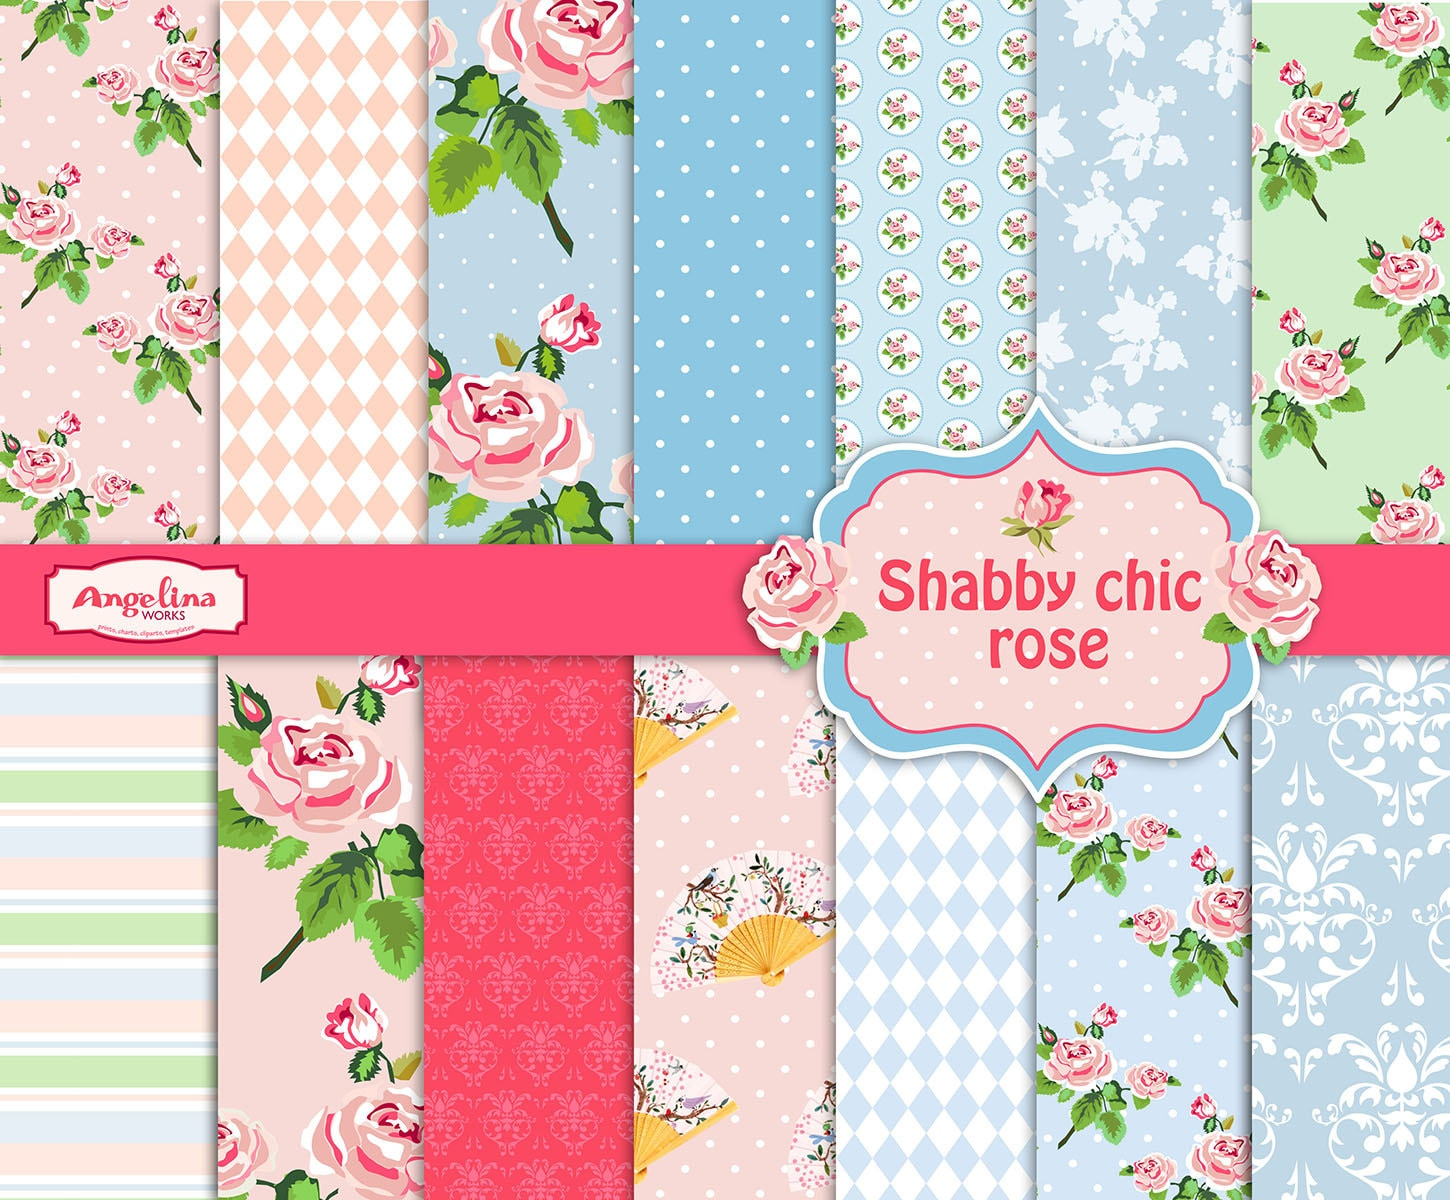 14 Shabby Chic Rose Digital Scrapbook Paper pack for ...